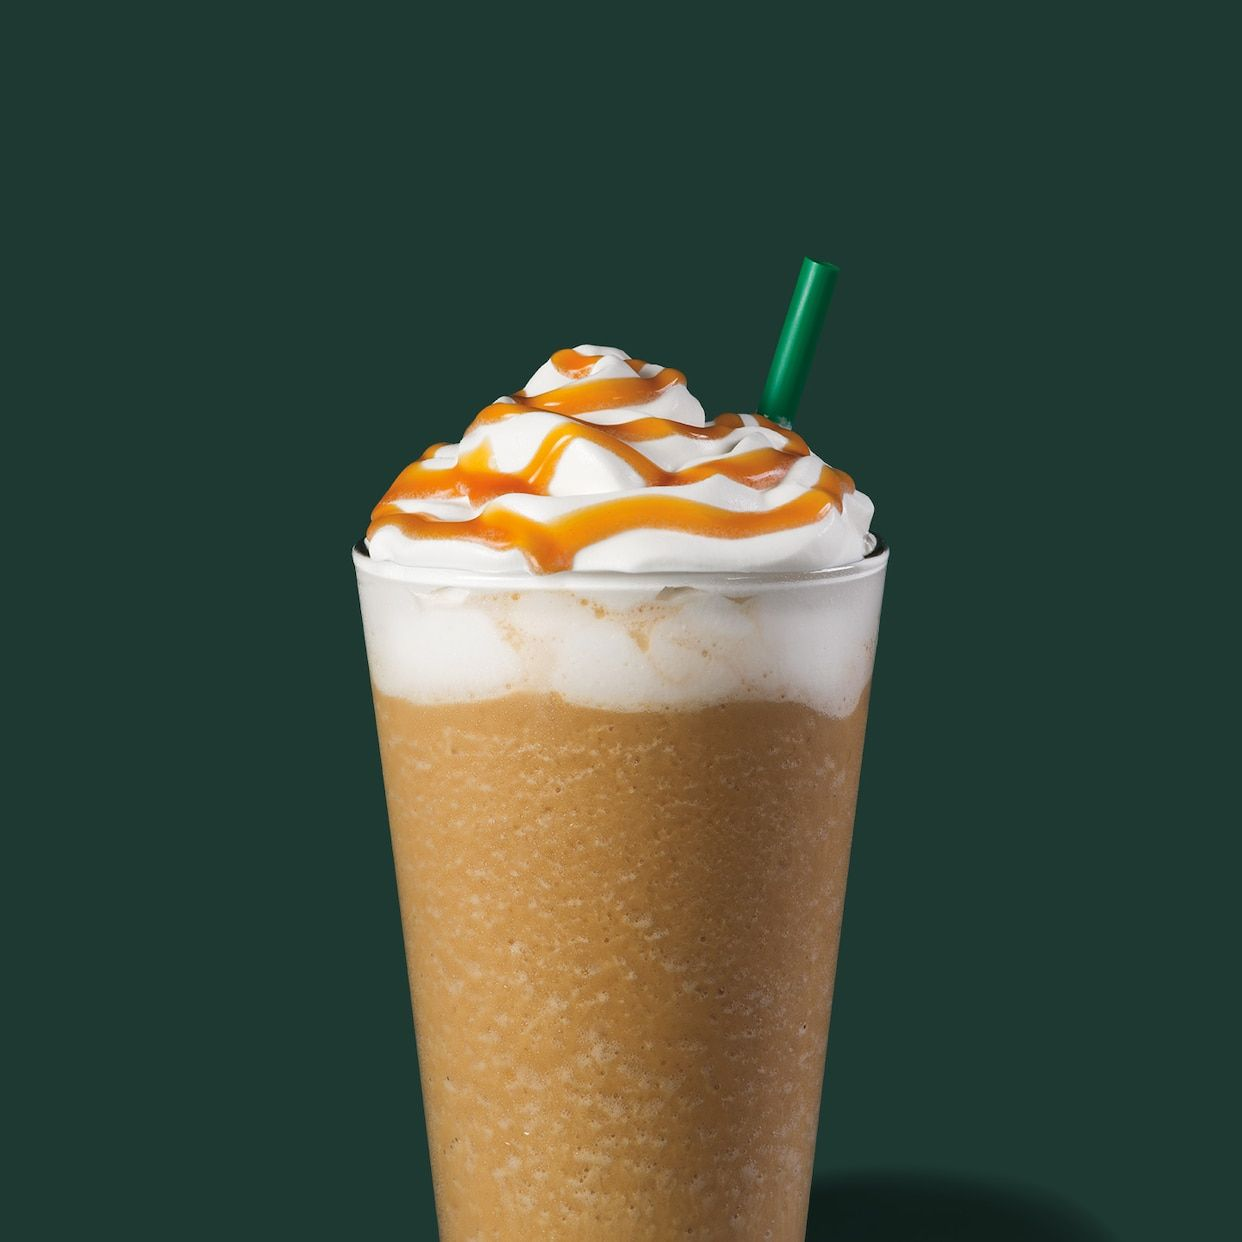 Starbucks Ice Blended Coffee Calories In 2020 Coffee Calories Starbucks Drinks Caramel Frappuccino